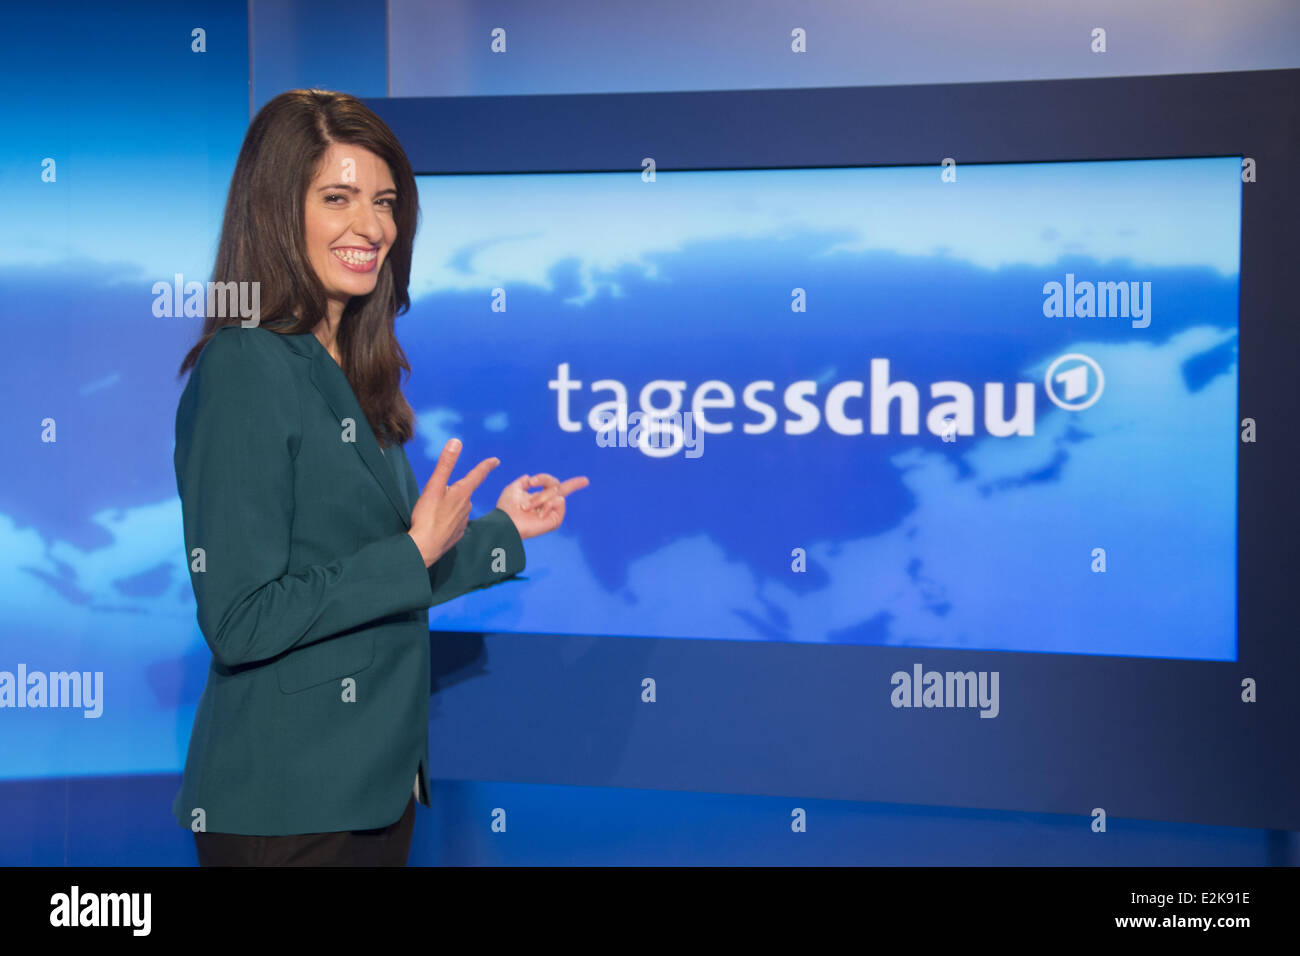 linda zervakis wird als neue hauptmoderatorin f r deutsche ard nachrichten tagesschau im ard. Black Bedroom Furniture Sets. Home Design Ideas